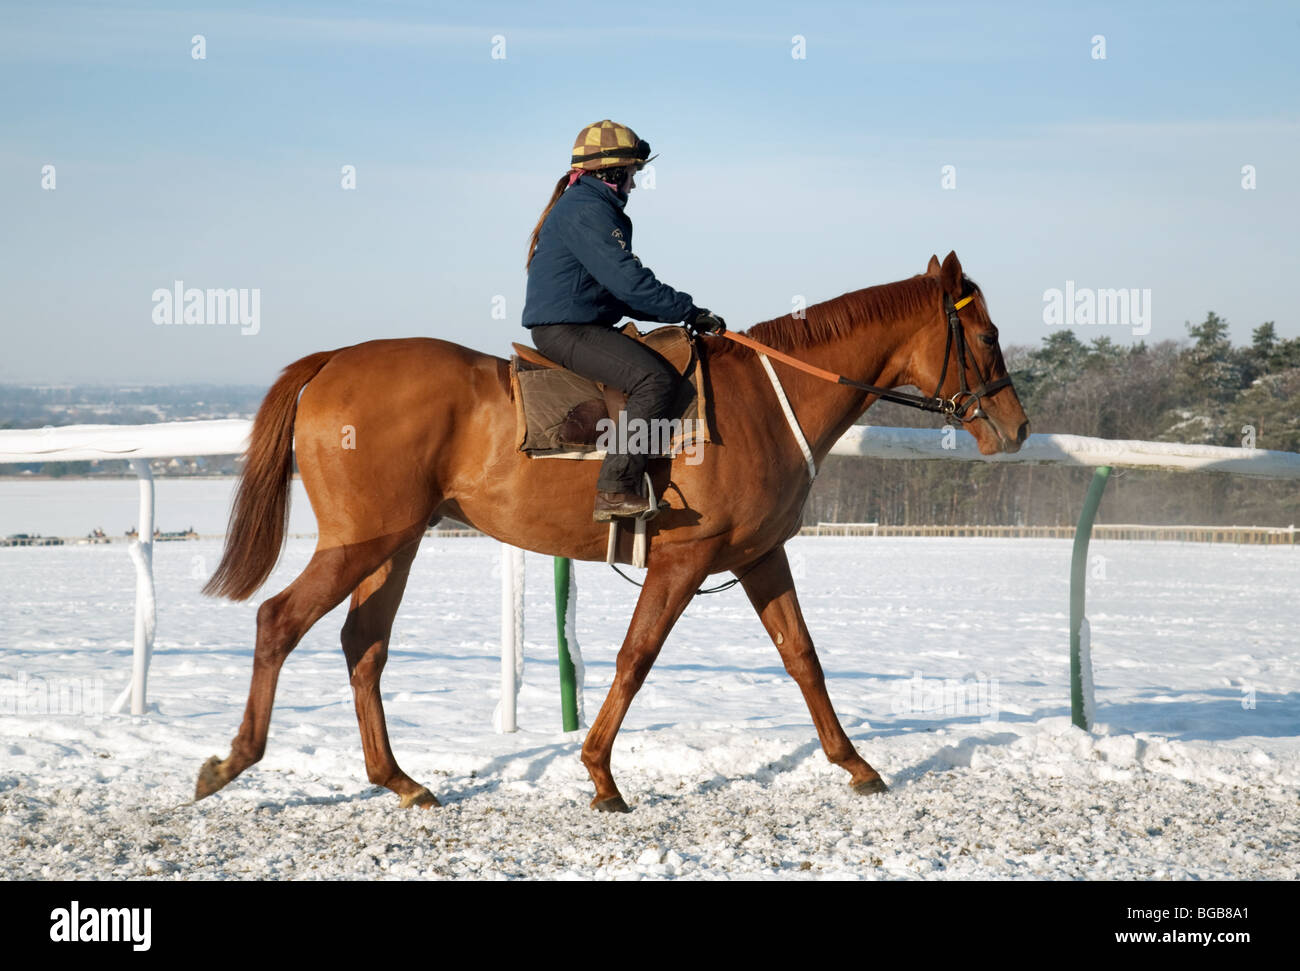 Racehorse and rider in winter snow, Warren Hill training ground, Newmarket, Suffolk, UK - Stock Image